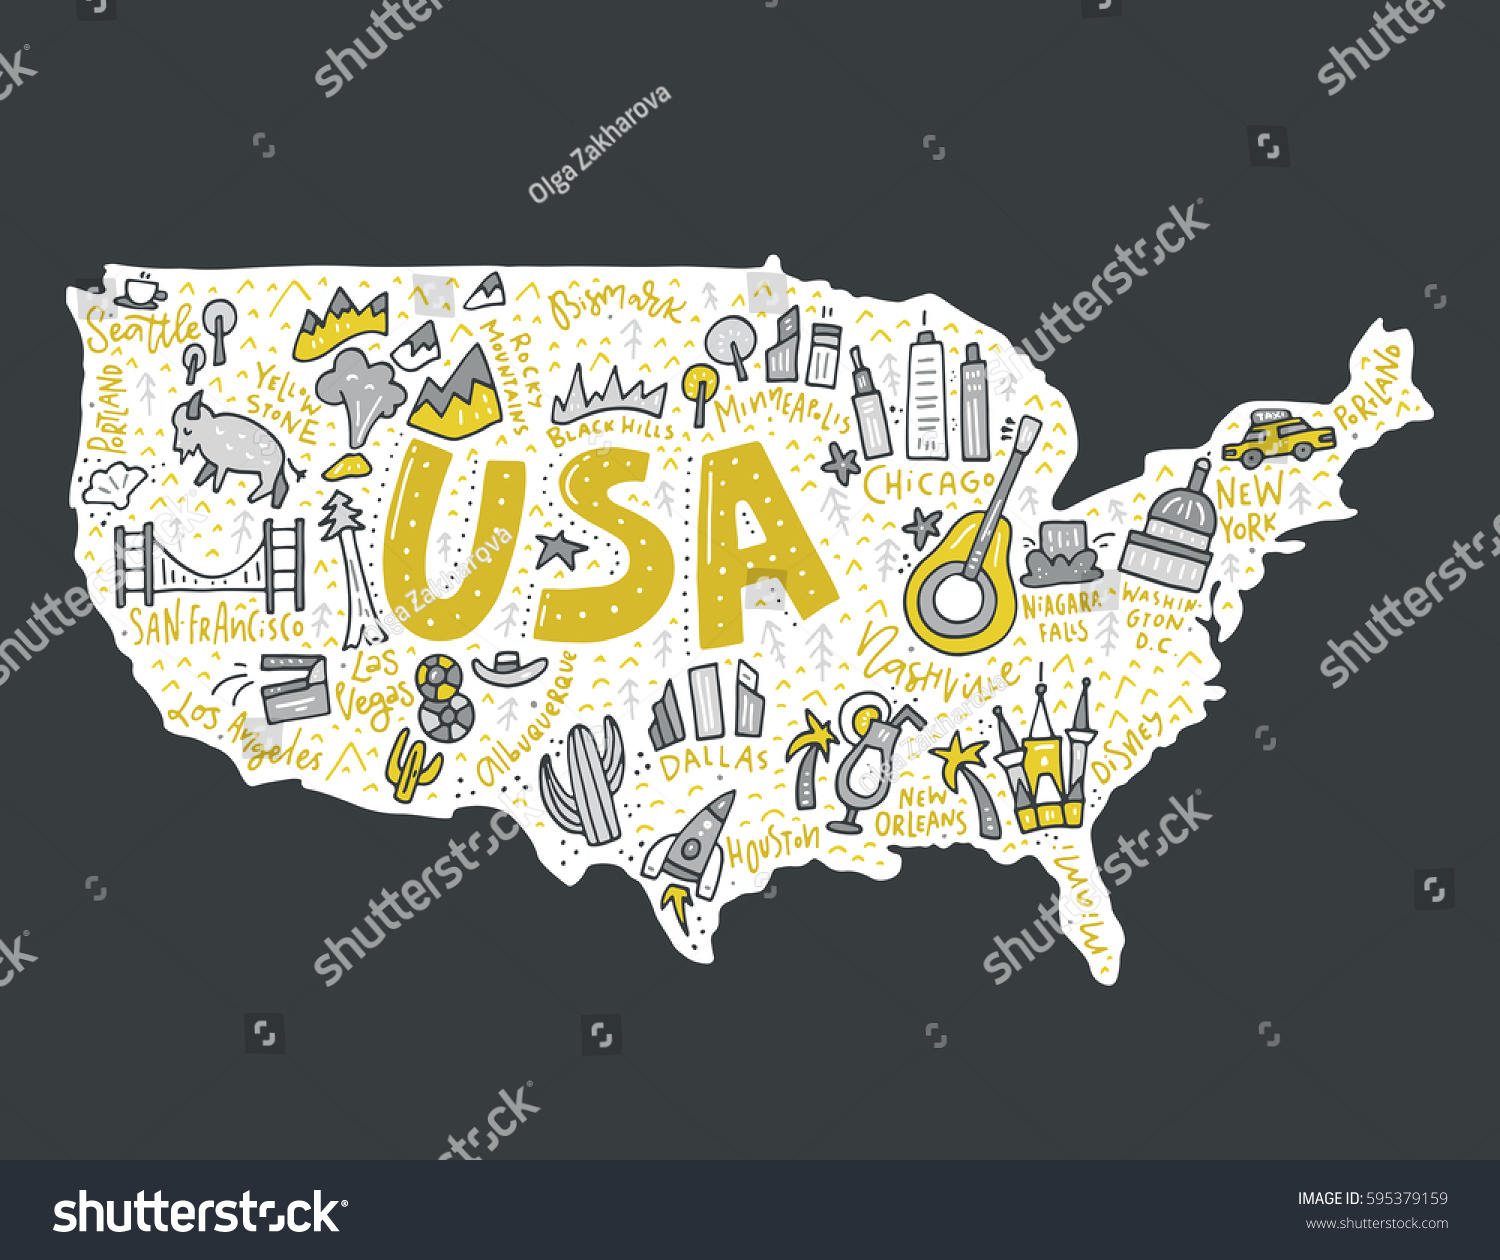 Map united states cartoon style travel stock vector 595379159 map of united states in cartoon style travel usa concept gumiabroncs Image collections